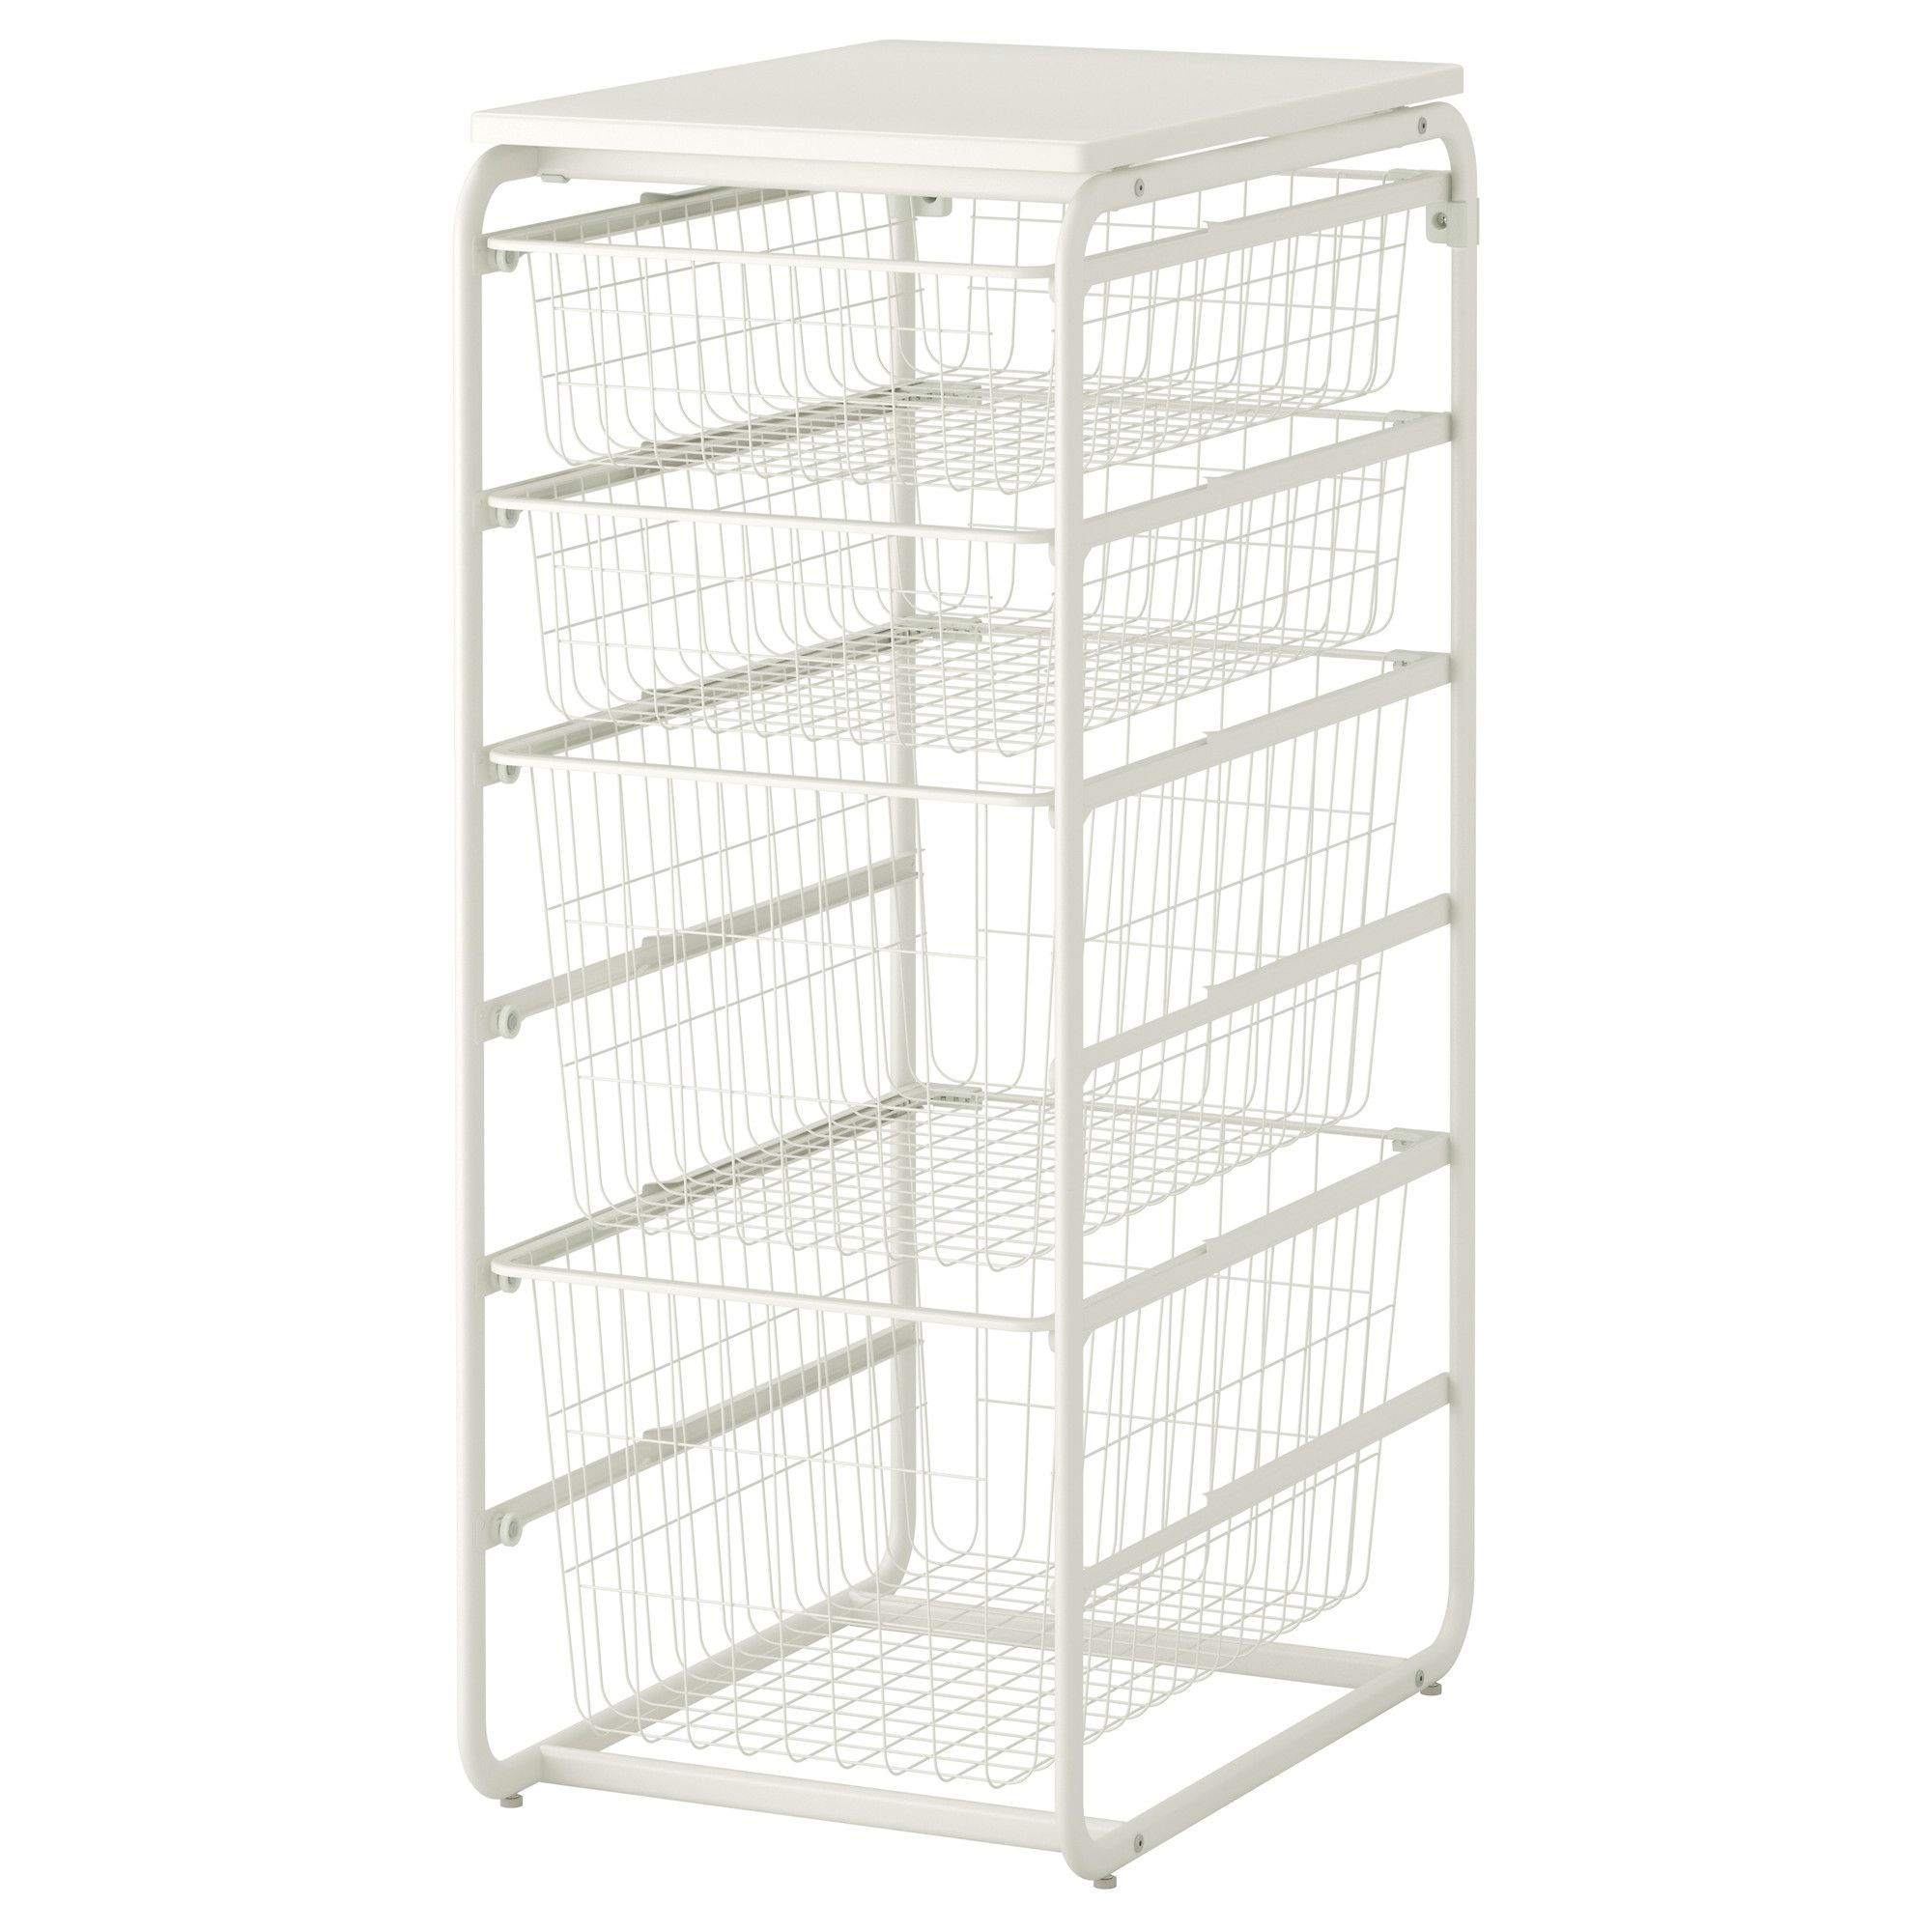 Algot Frame With 4 Wire Baskets Top Shelf